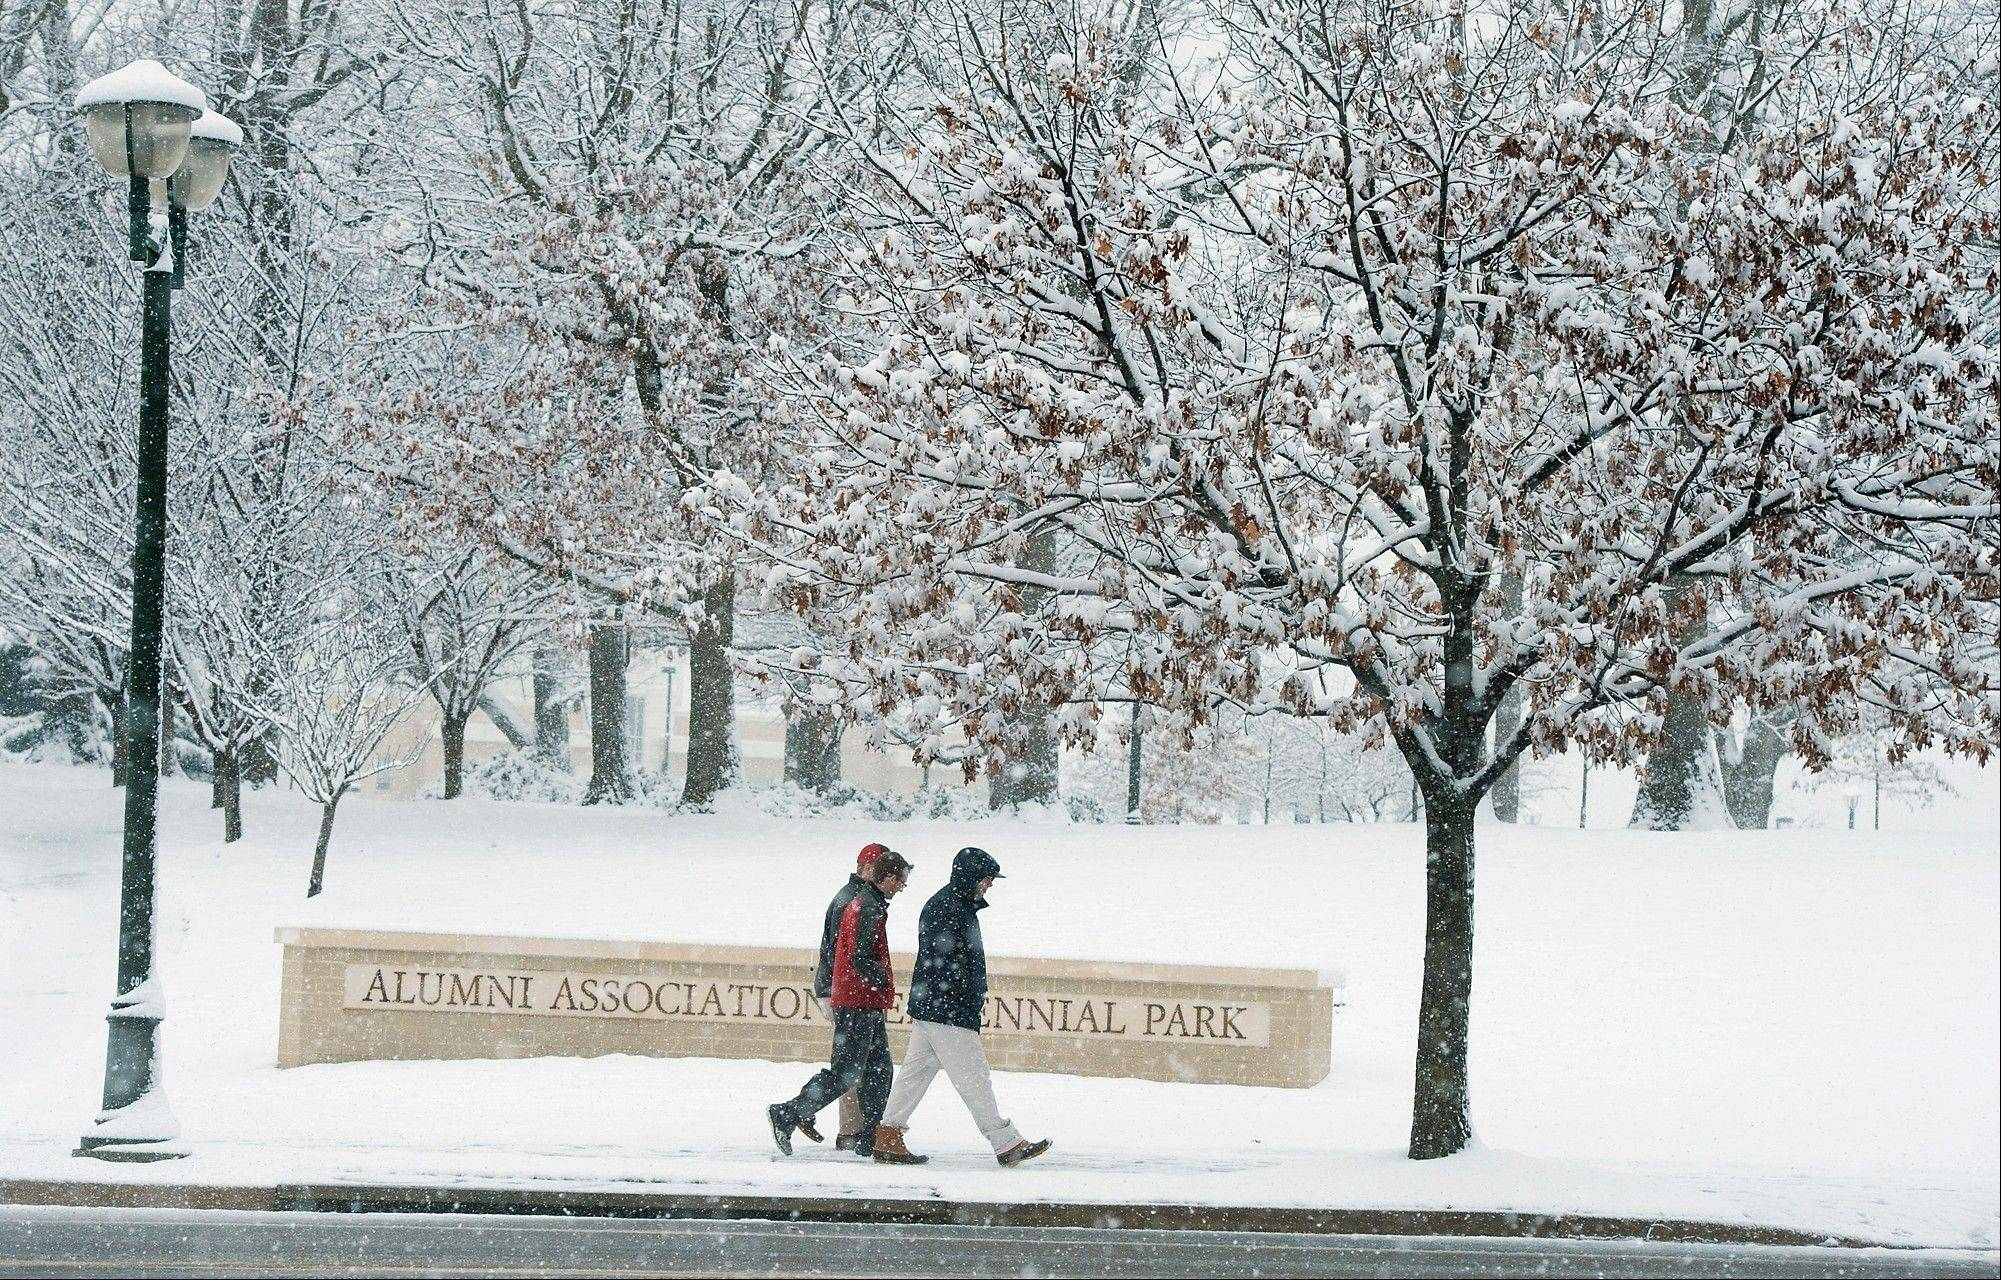 James Madison University students walk along Carrier Drive at the Alumni Association Centennial Park during the snow in Harrisonburg, Va., Sunday evening March 24, 2013.